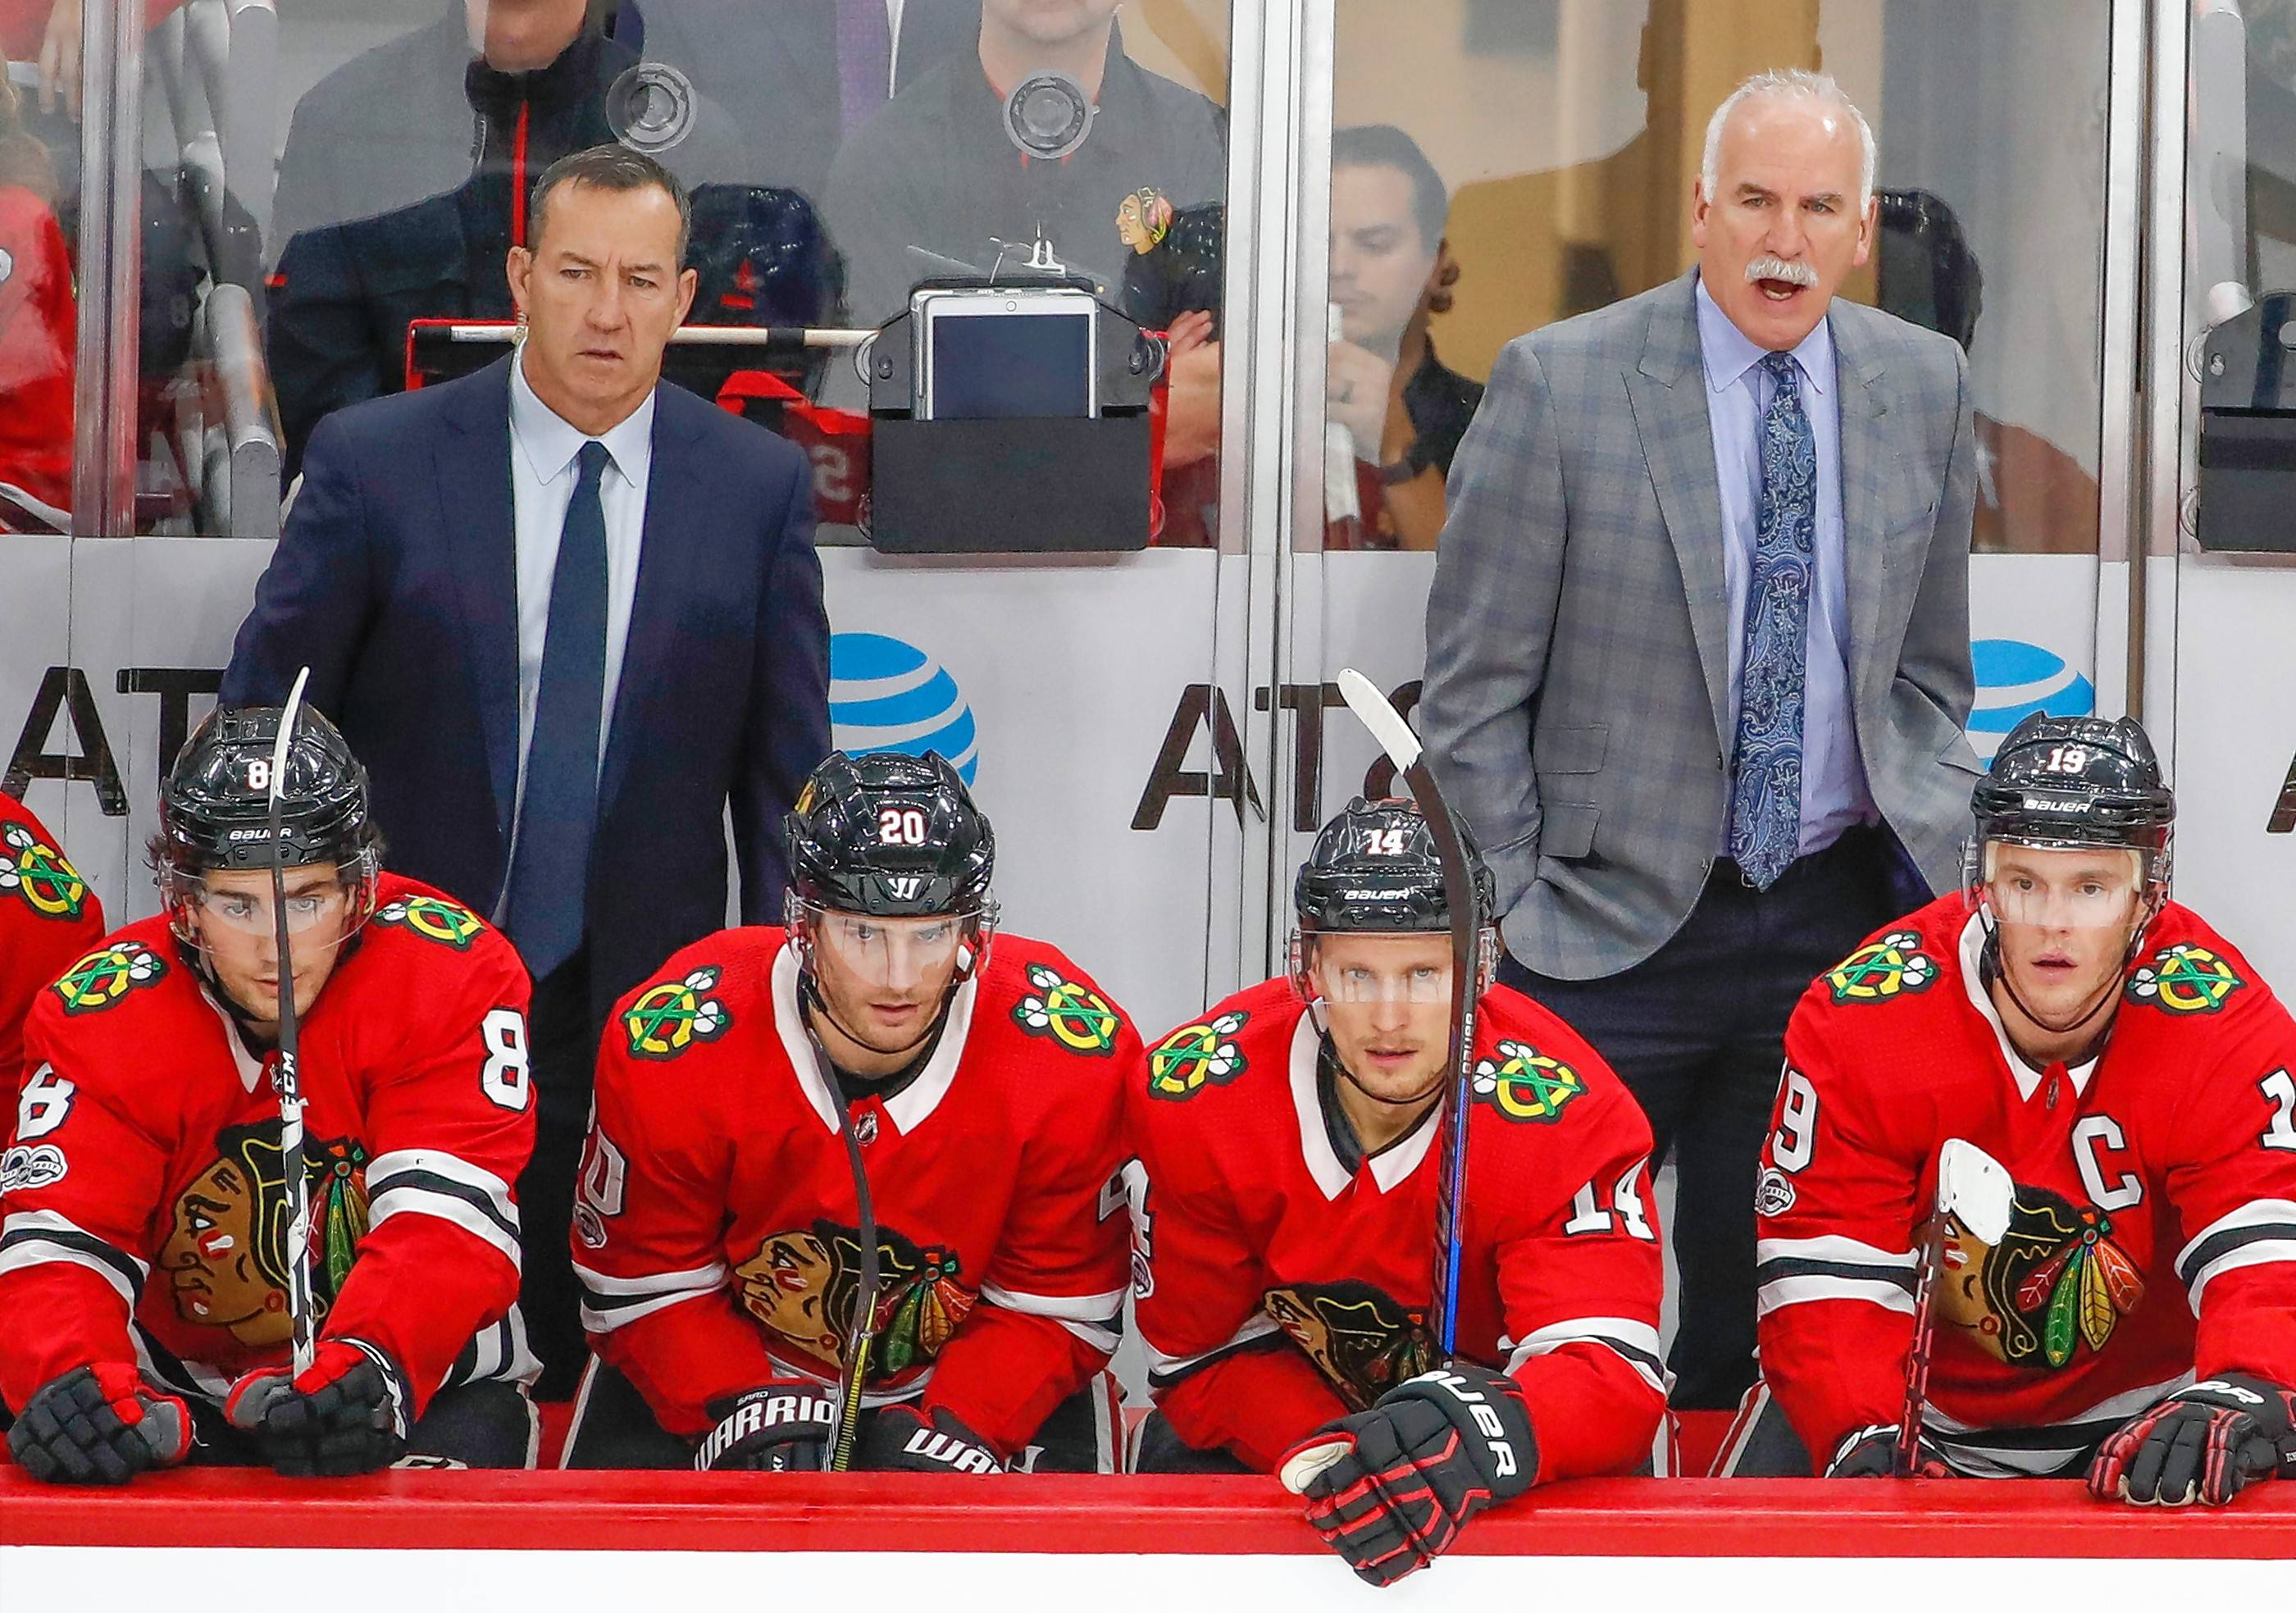 Chicago Blackhawks head coach Joel Quenneville, back right, yells to his team during the third period of an NHL hockey game against the New Jersey Devils Sunday, Nov. 12, 2017, in Chicago.